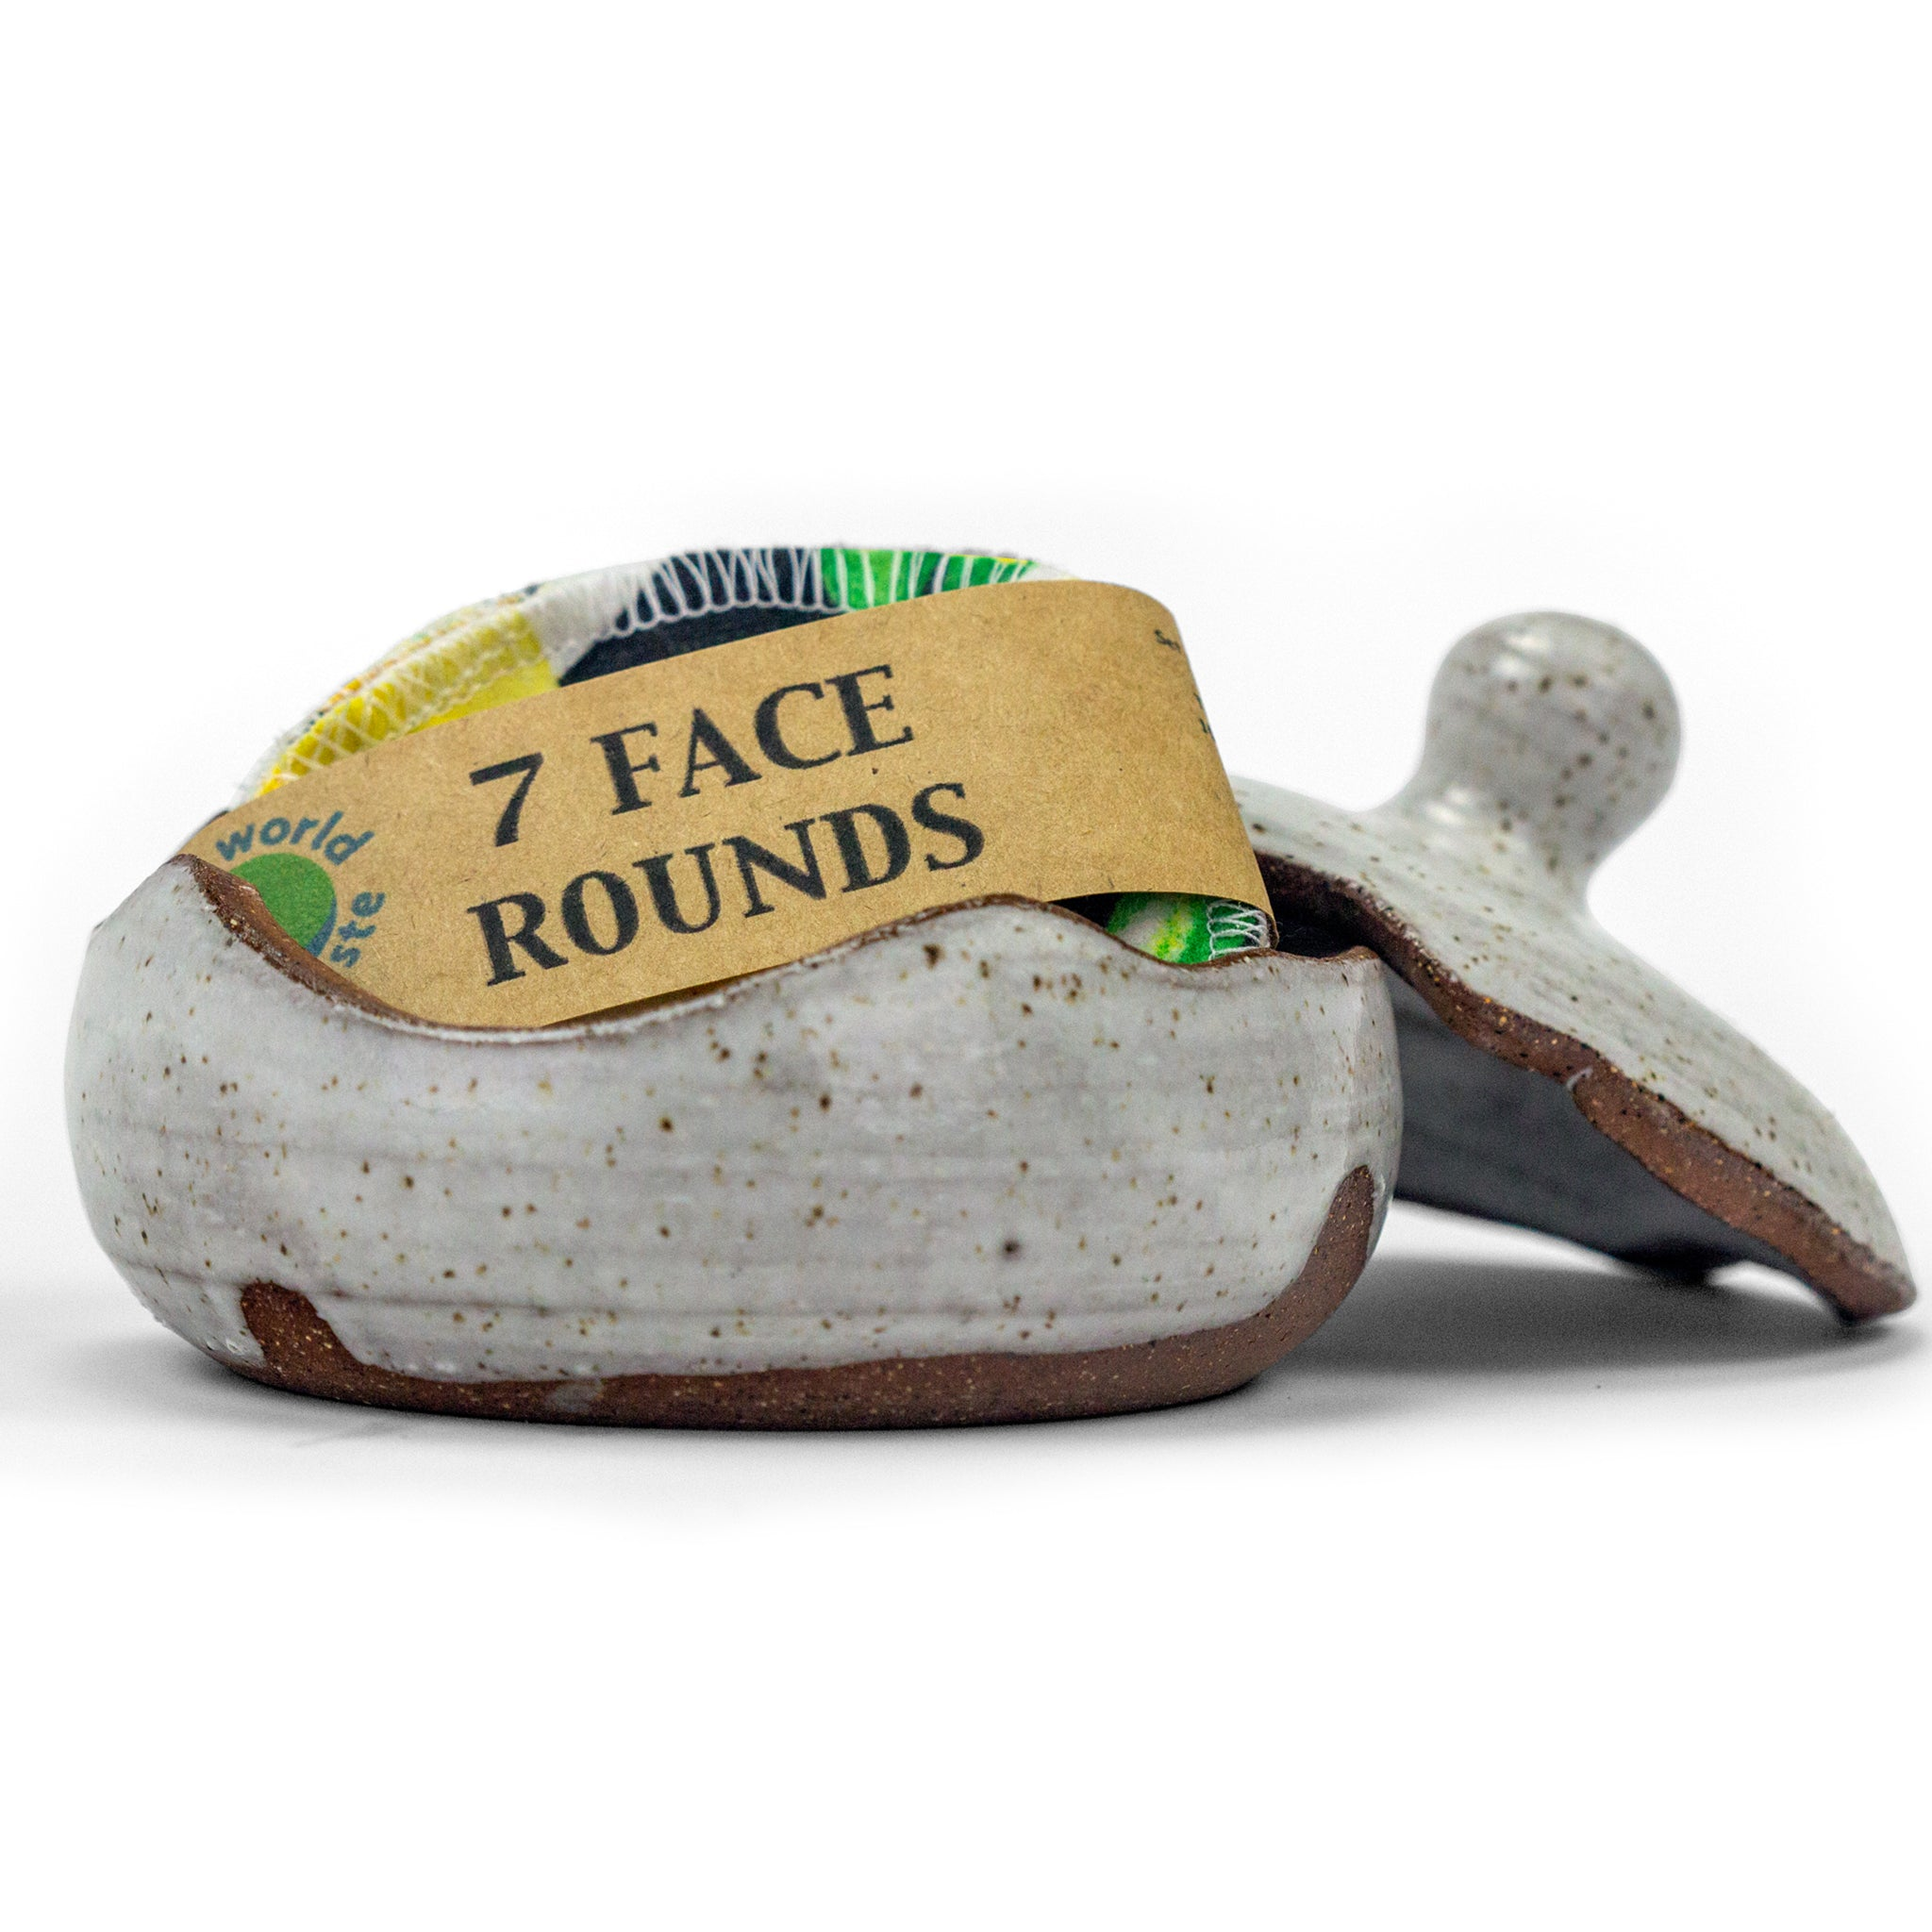 Cotton Face Rounds- 7 Pack in Pretty Patterns